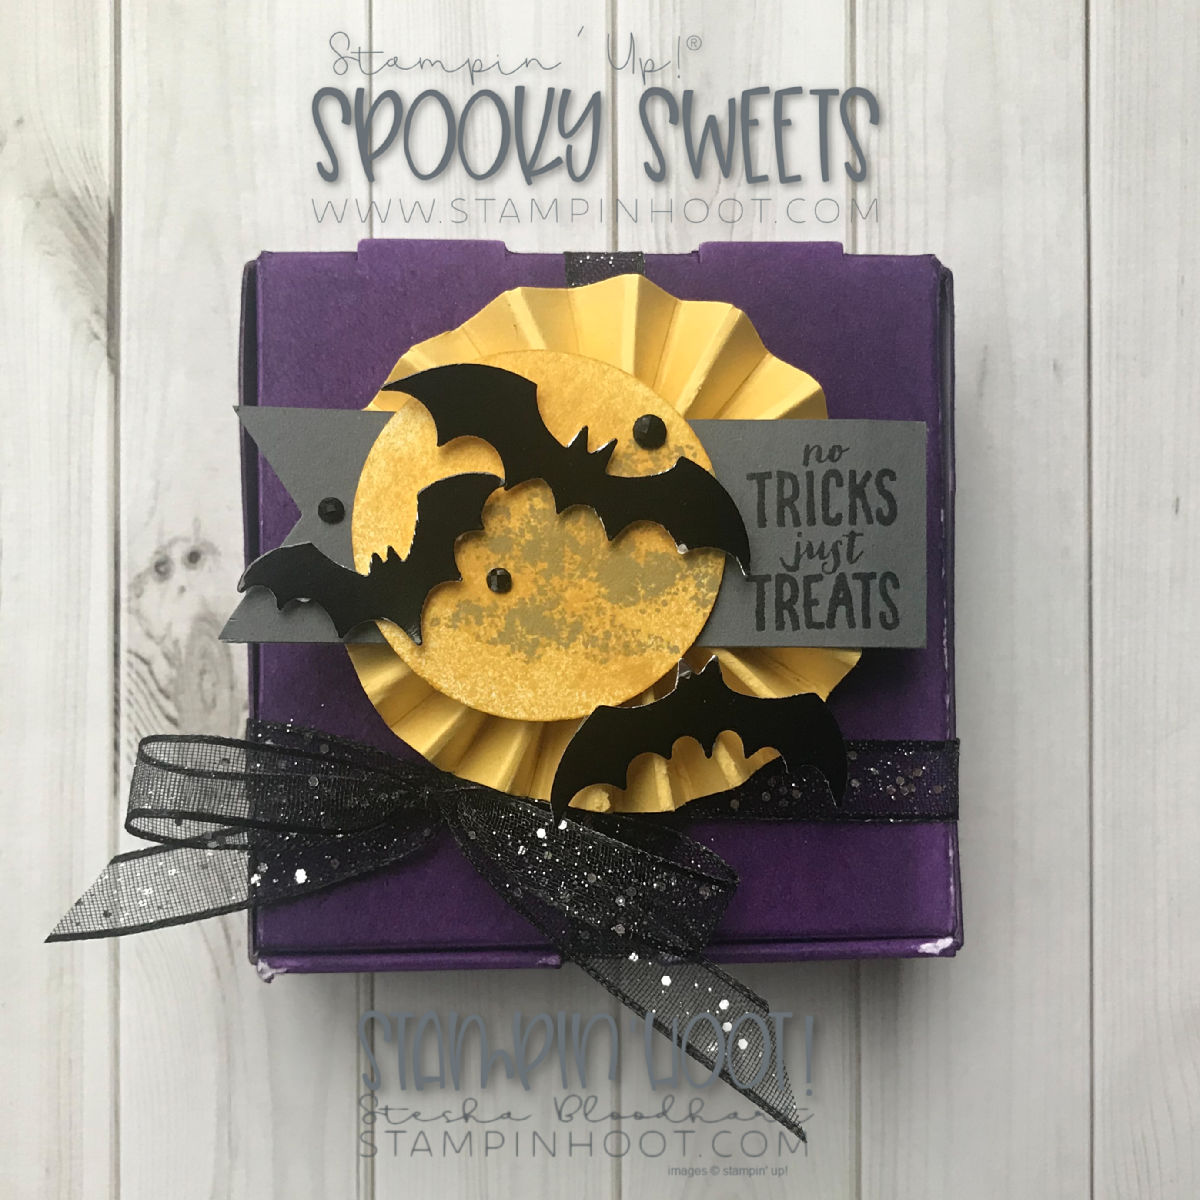 Spooky Sweets Bundle by Stampin' Up! Halloween Mini Pizza Box Gift Packaging by Stesha Bloodhart, Stampin' Hoot! #tgifc178 #steshabloodhart #stampinhoot